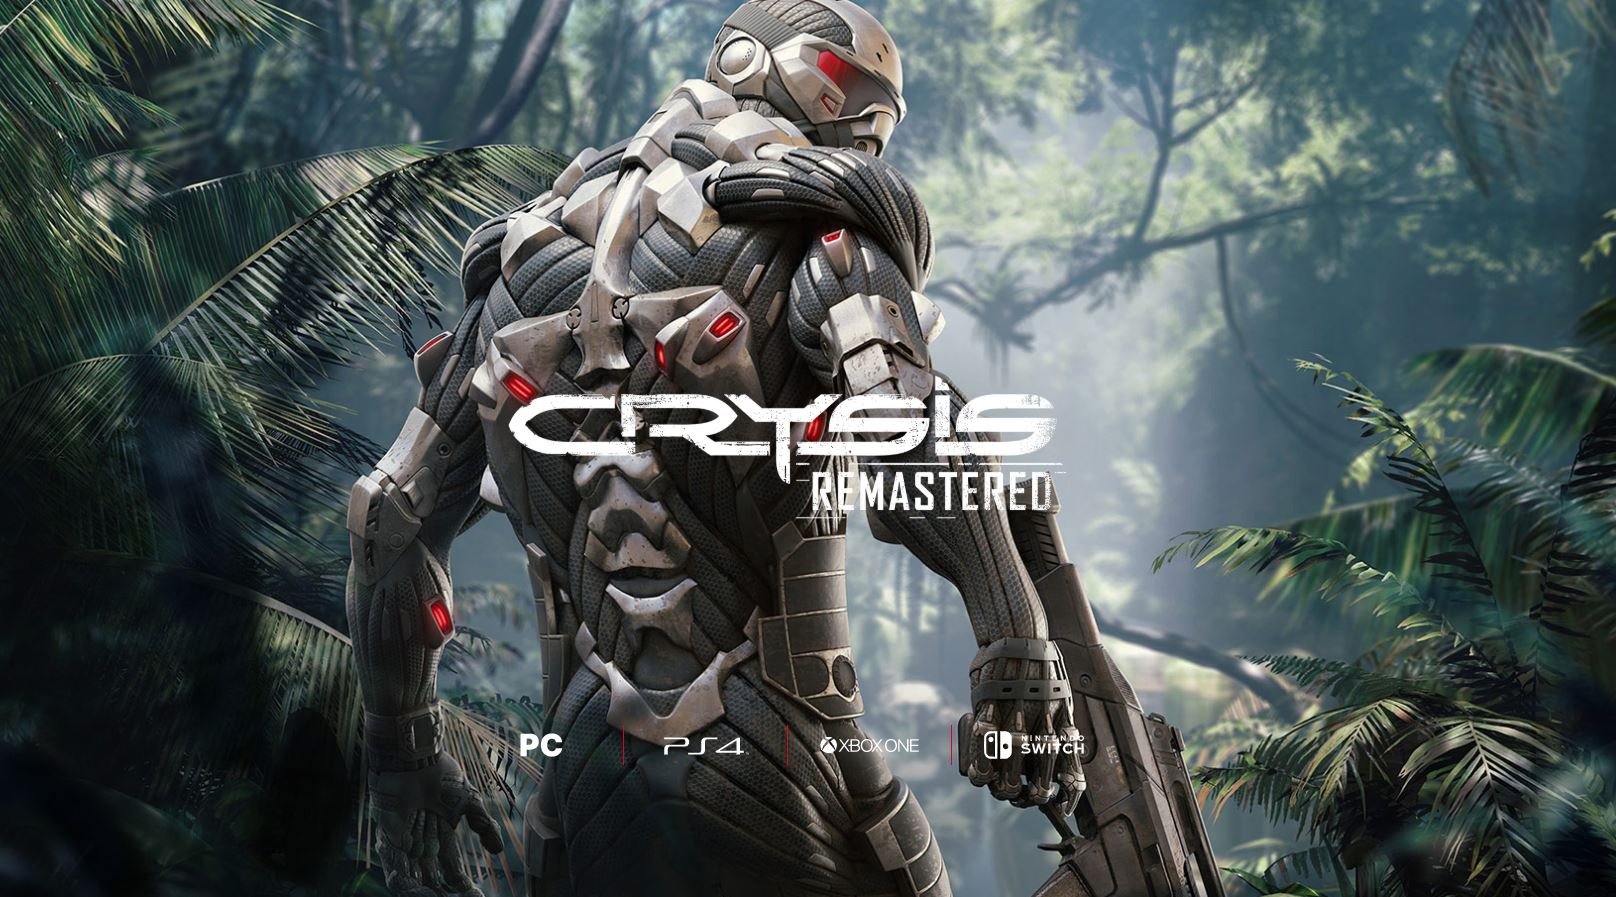 Crysis Remastered is Out Today on Xbox One With a Launch Trailer